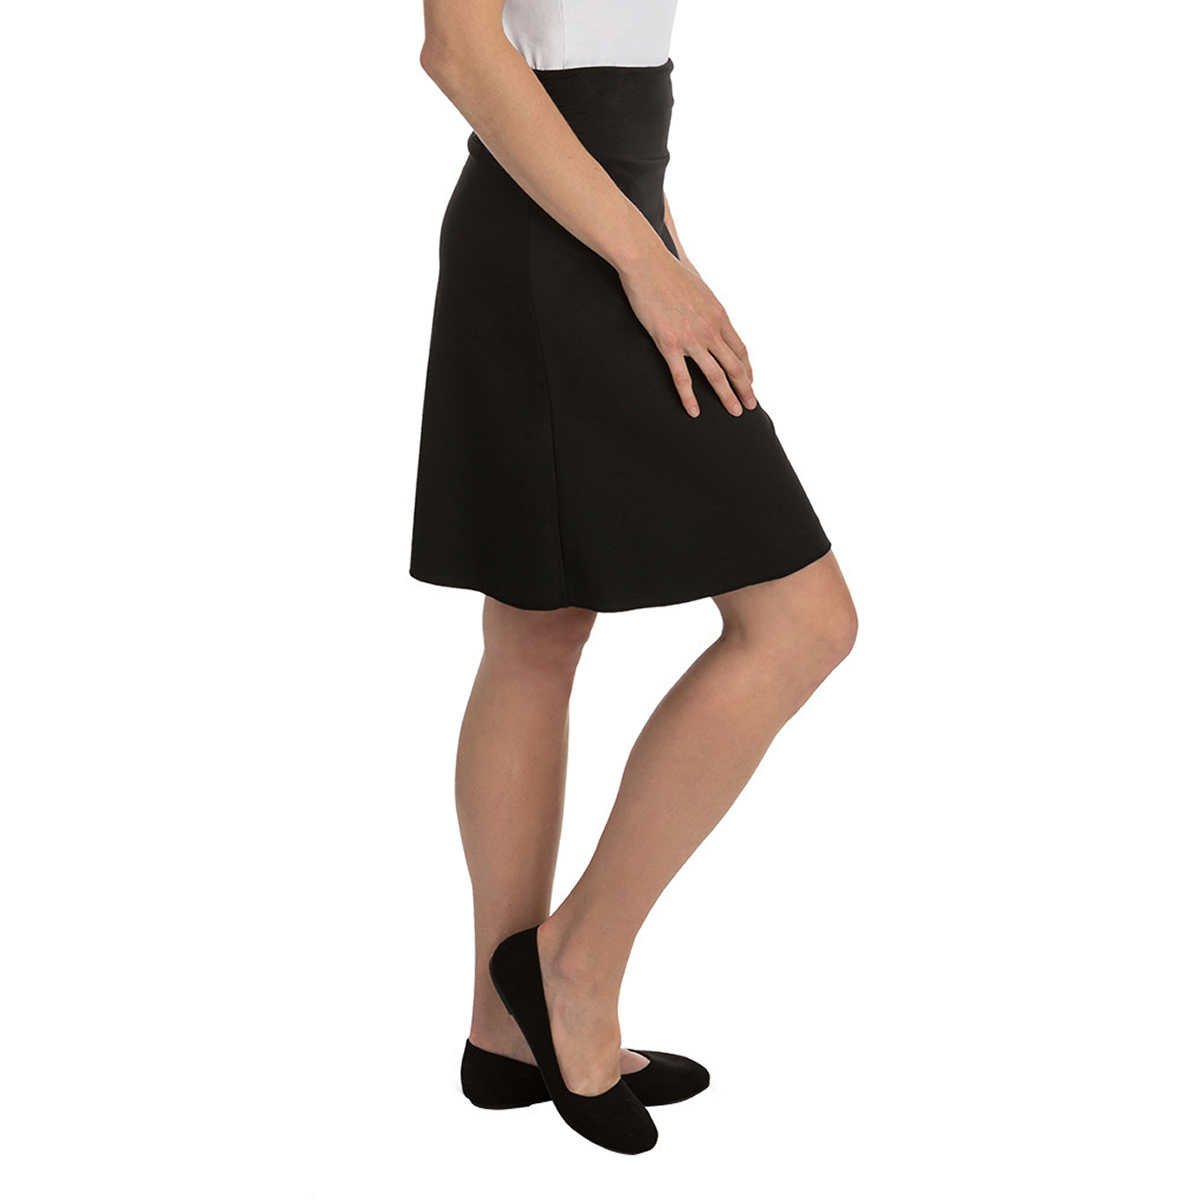 Colorado Clothing Tranquility Women's Reversible Skirt, Black Pattern, Large by Colorado Clothing (Image #2)